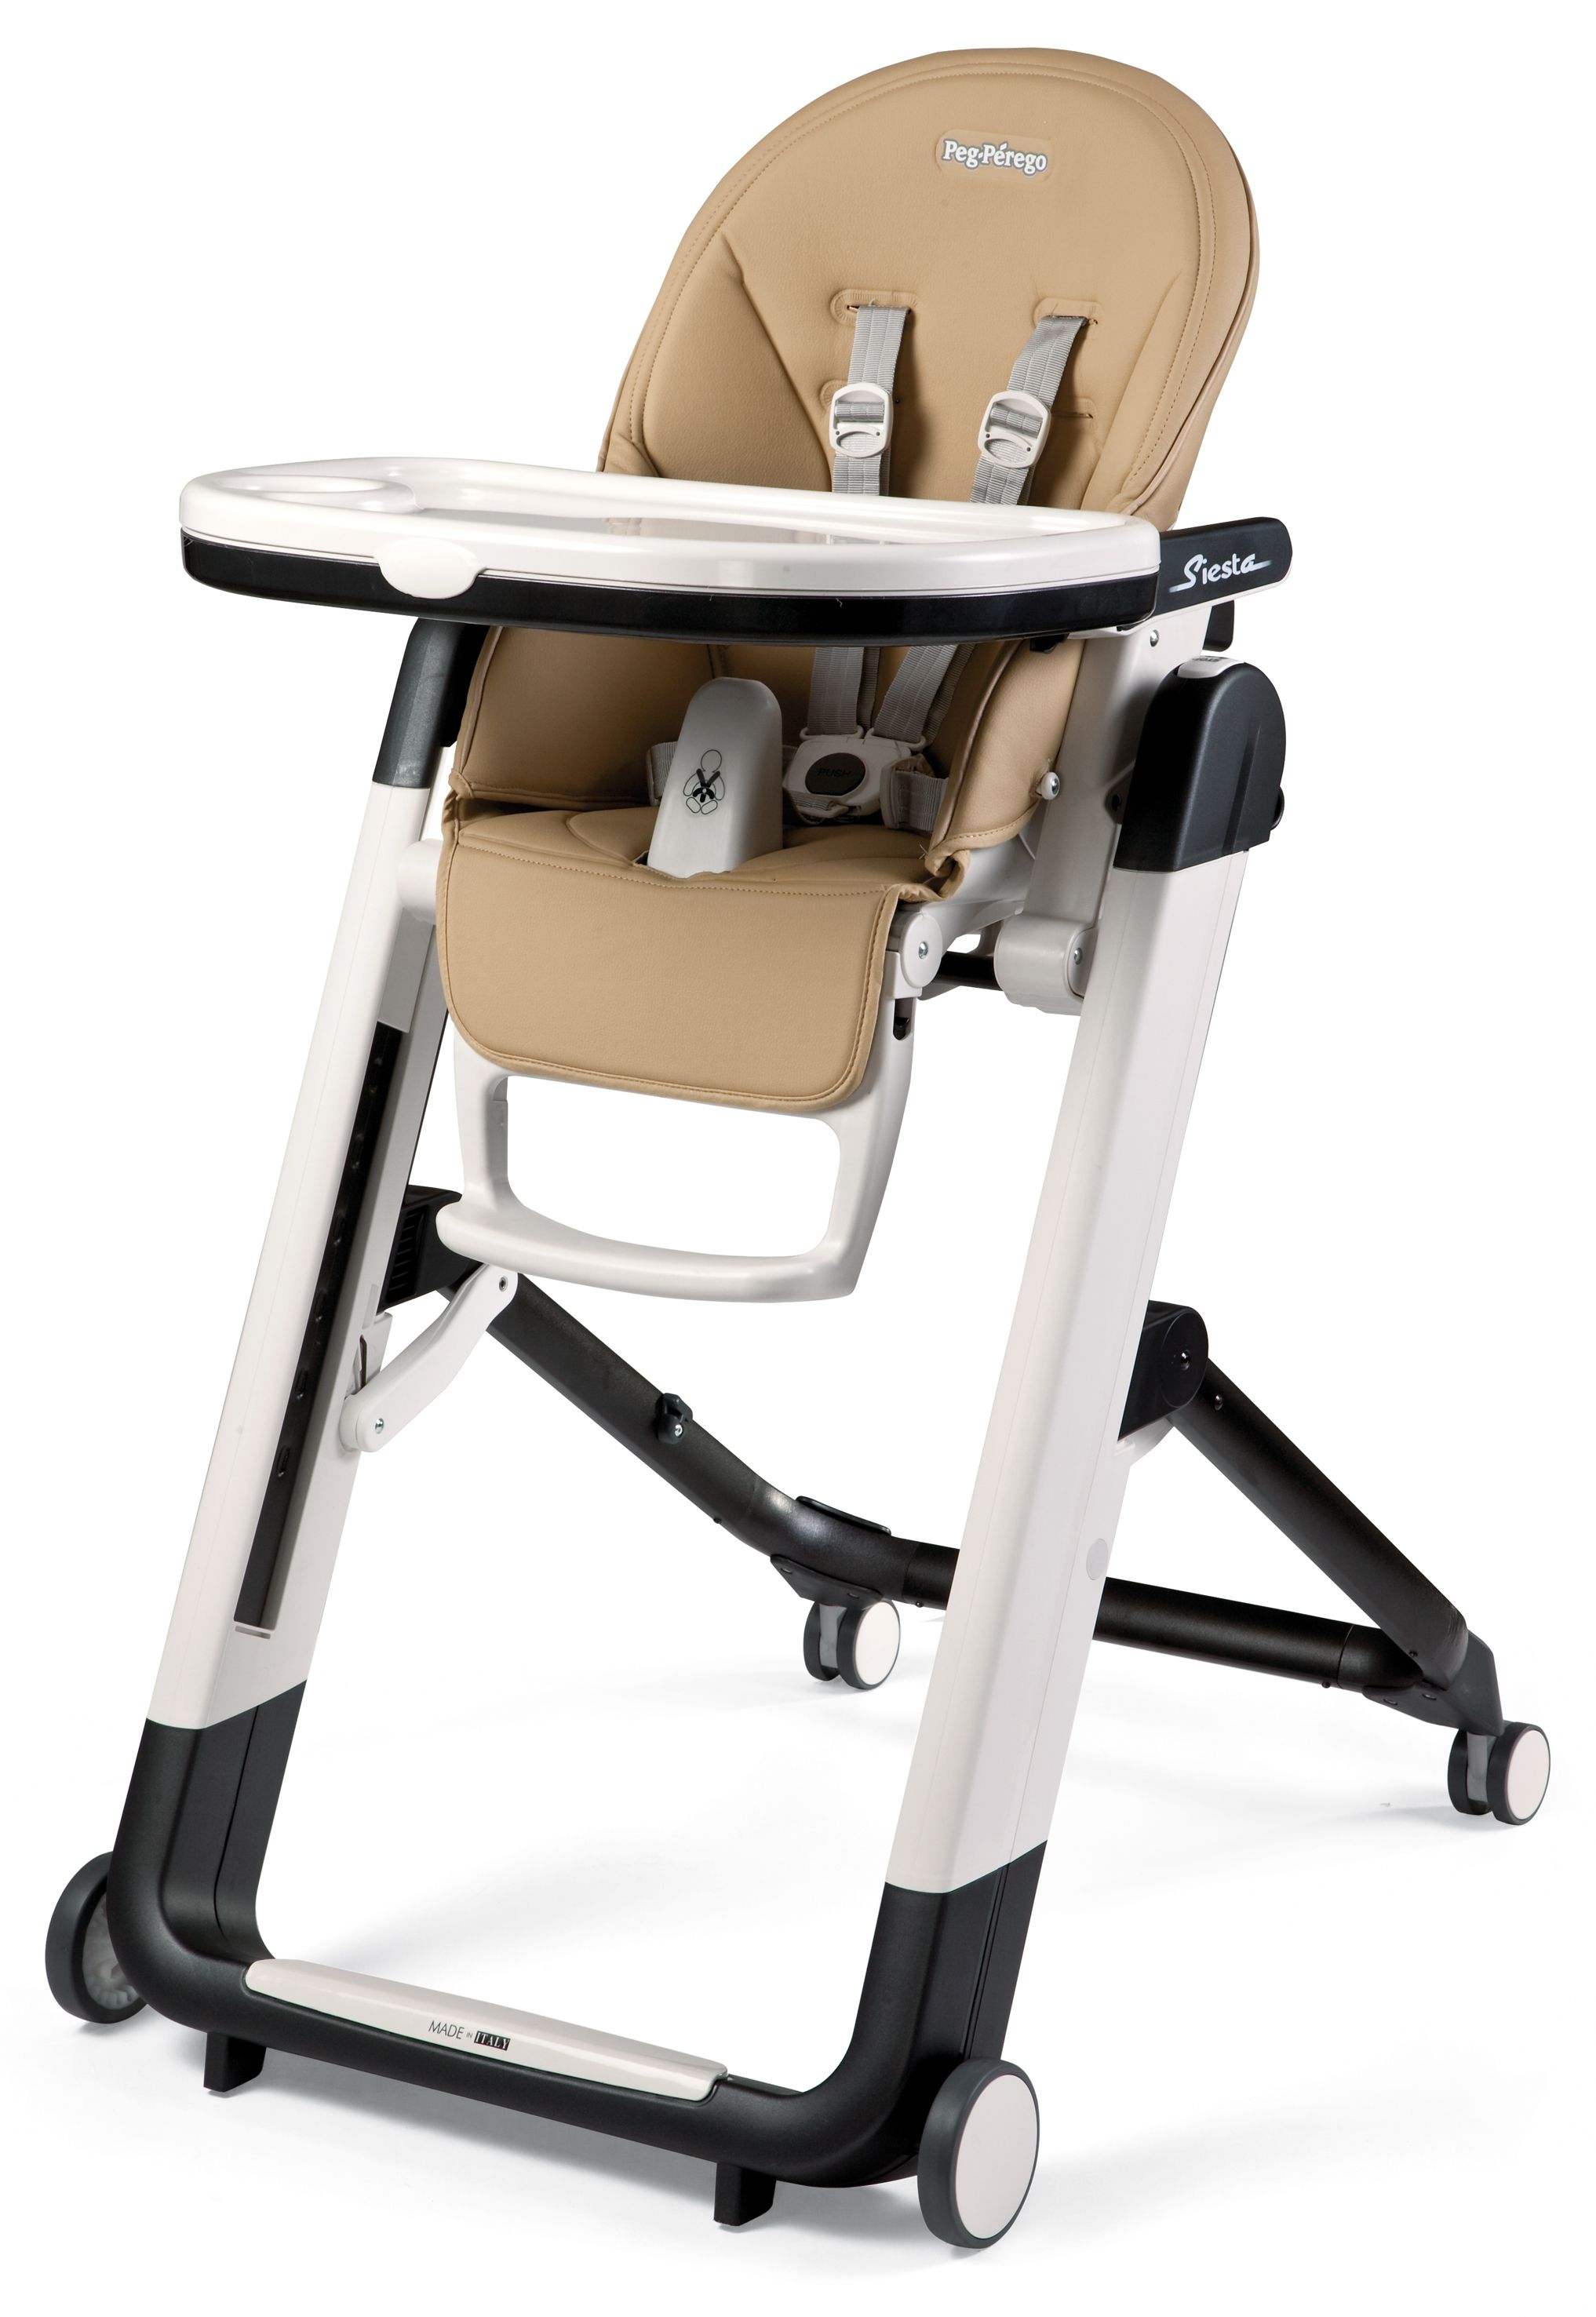 Baby Feeding Is A Long And Stressful Process Make It Stress Free With Our Wide Range Of High Chairs Only Http Best High Chairs Baby High Chair Peg Perego